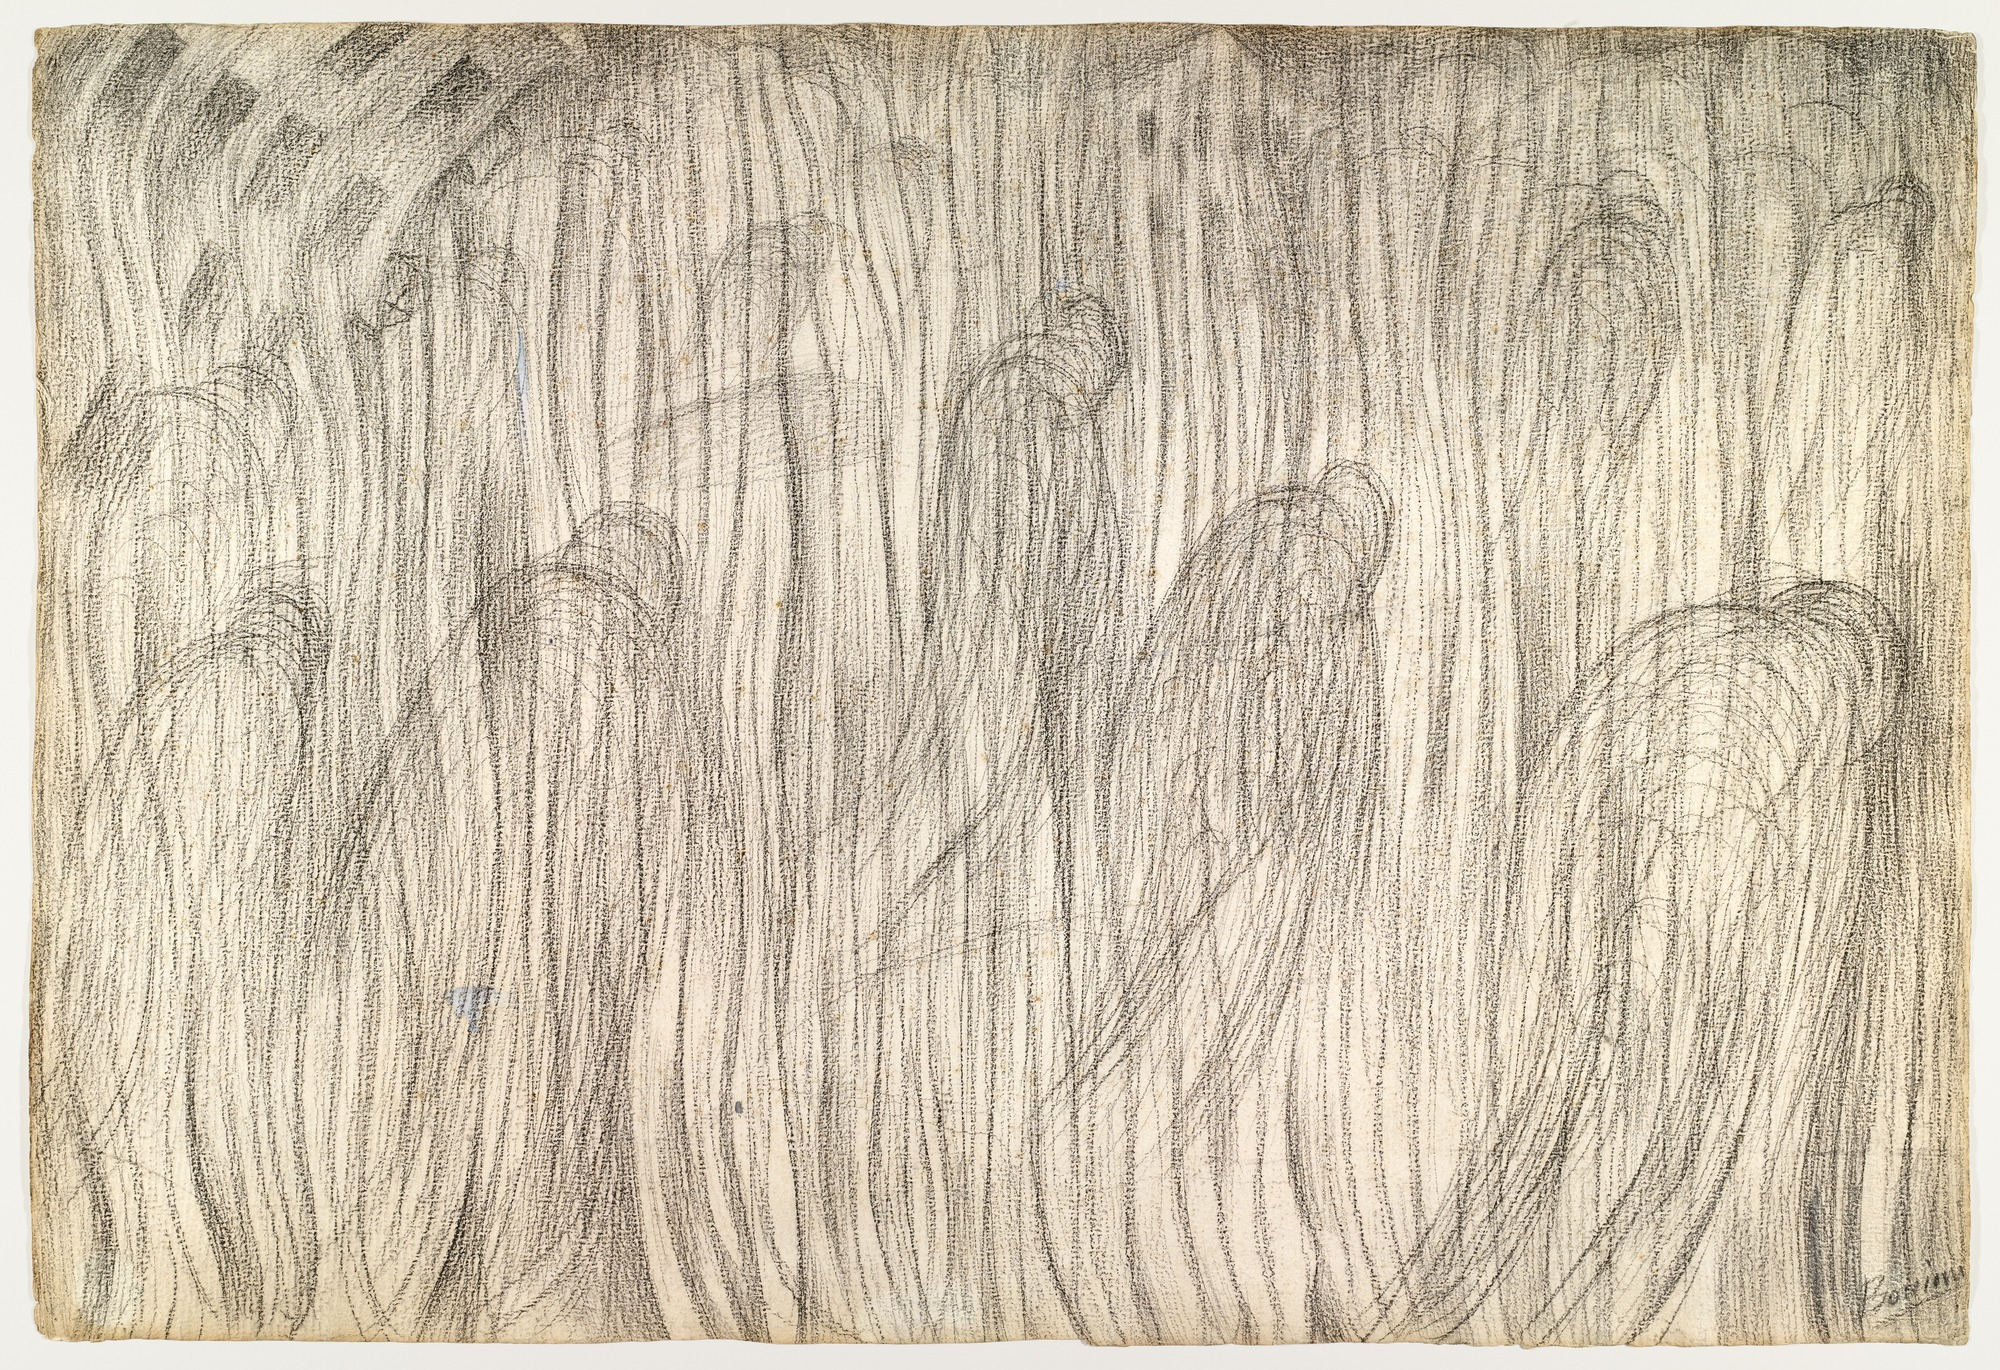 Sketch for States of Mind: Those Who Stay, 1911 — Umberto Boccioni